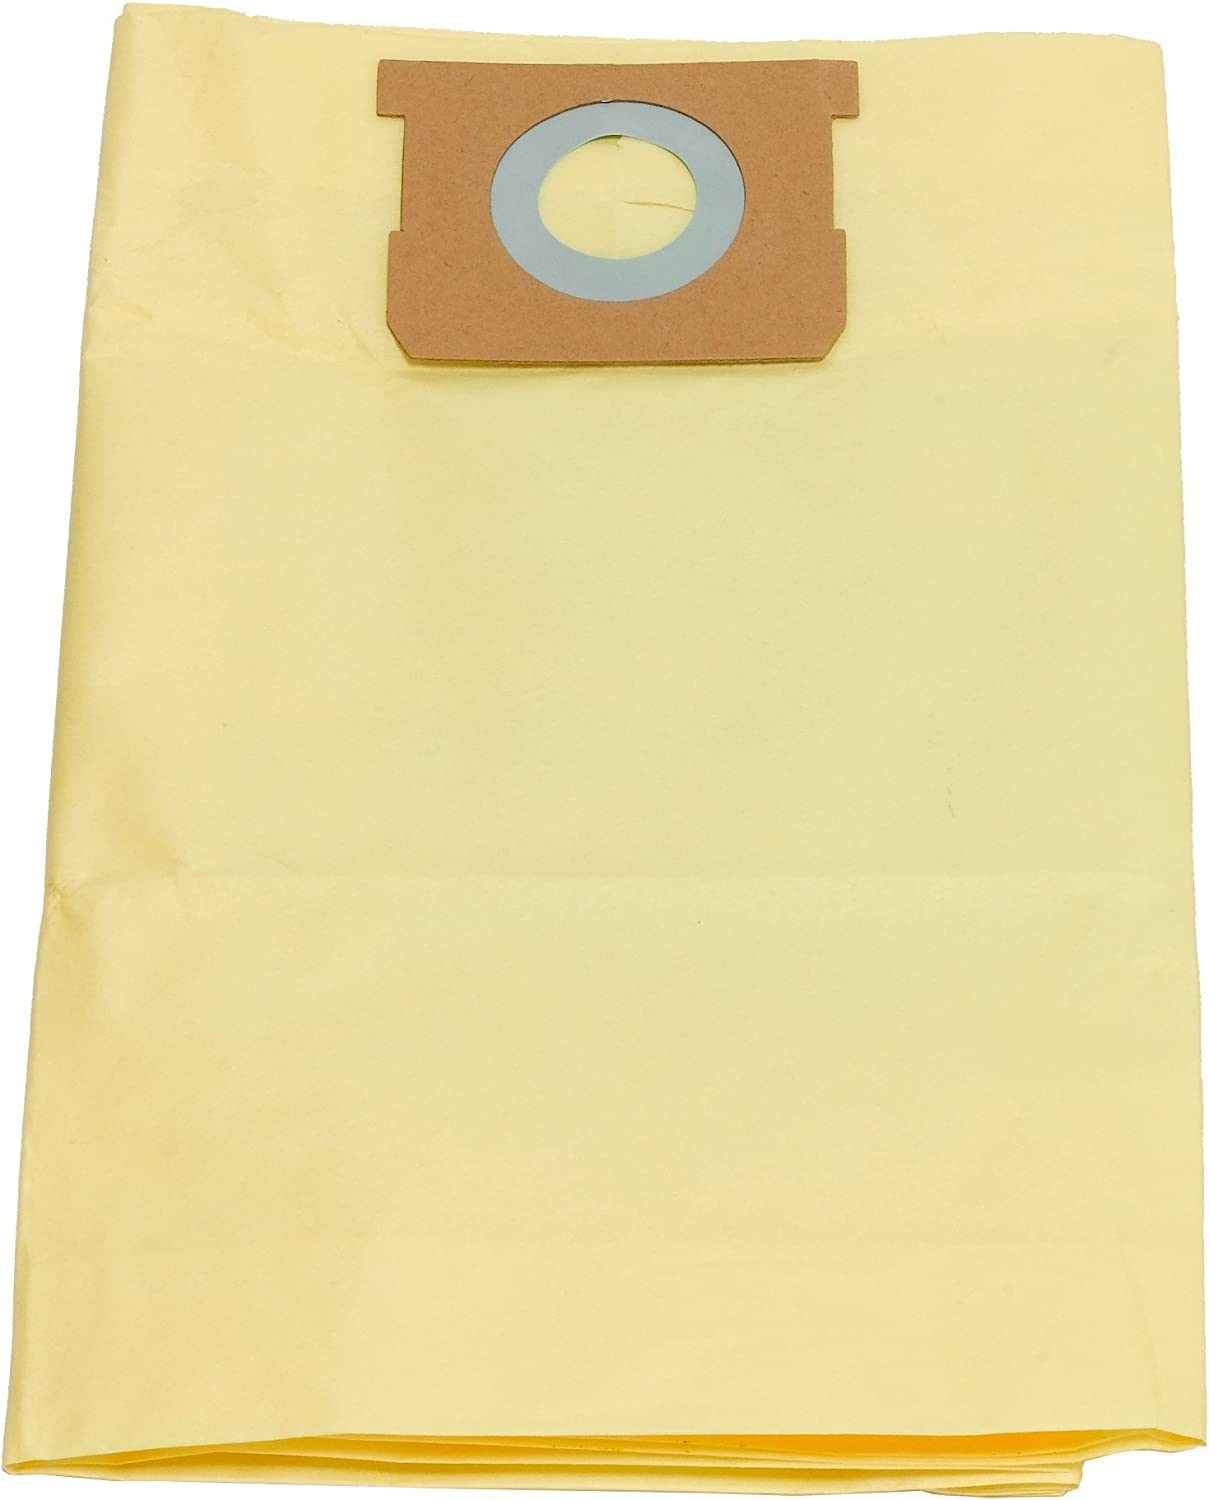 Vacmaster 8-10 Gallon High Efficiency Dust Bag, 3 Pack, VHBM